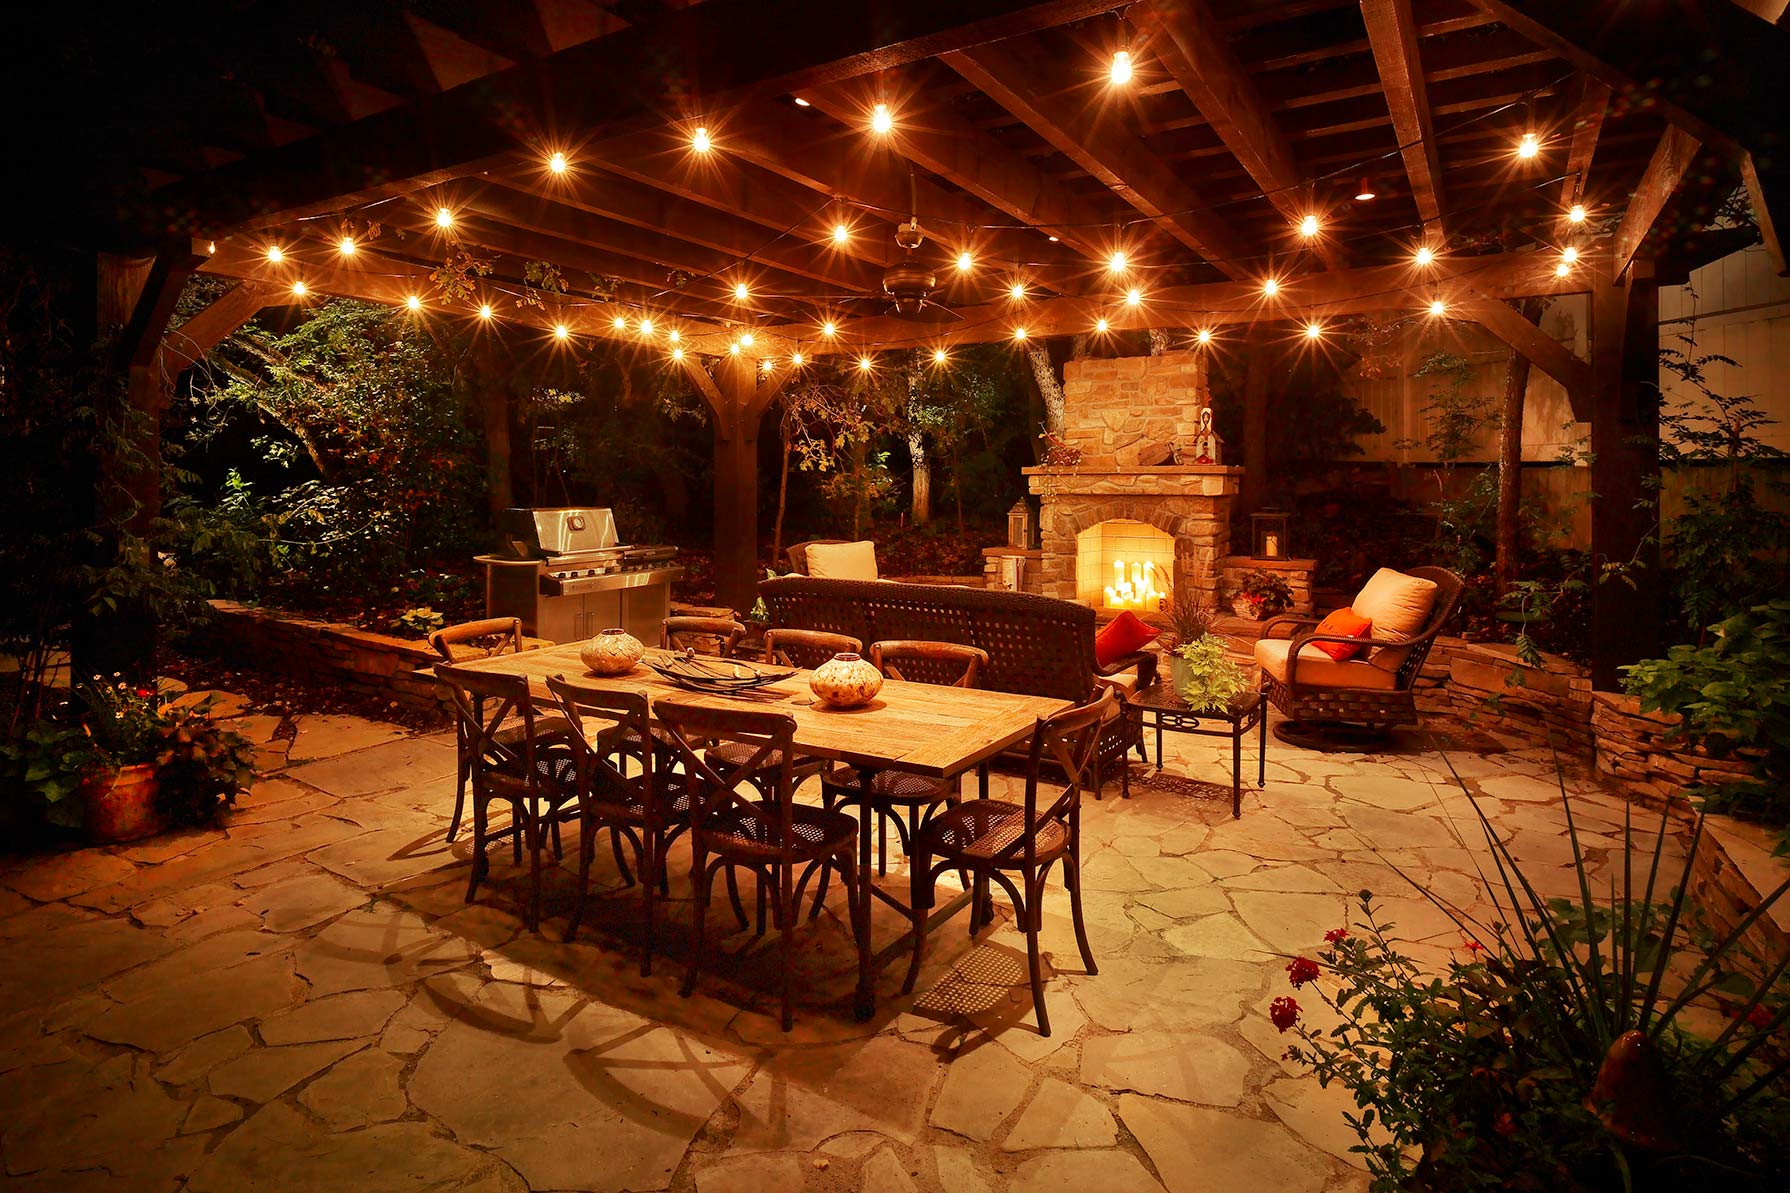 Outdoor deck lighting popular home decorating colors 2014 Patio and deck lighting ideas